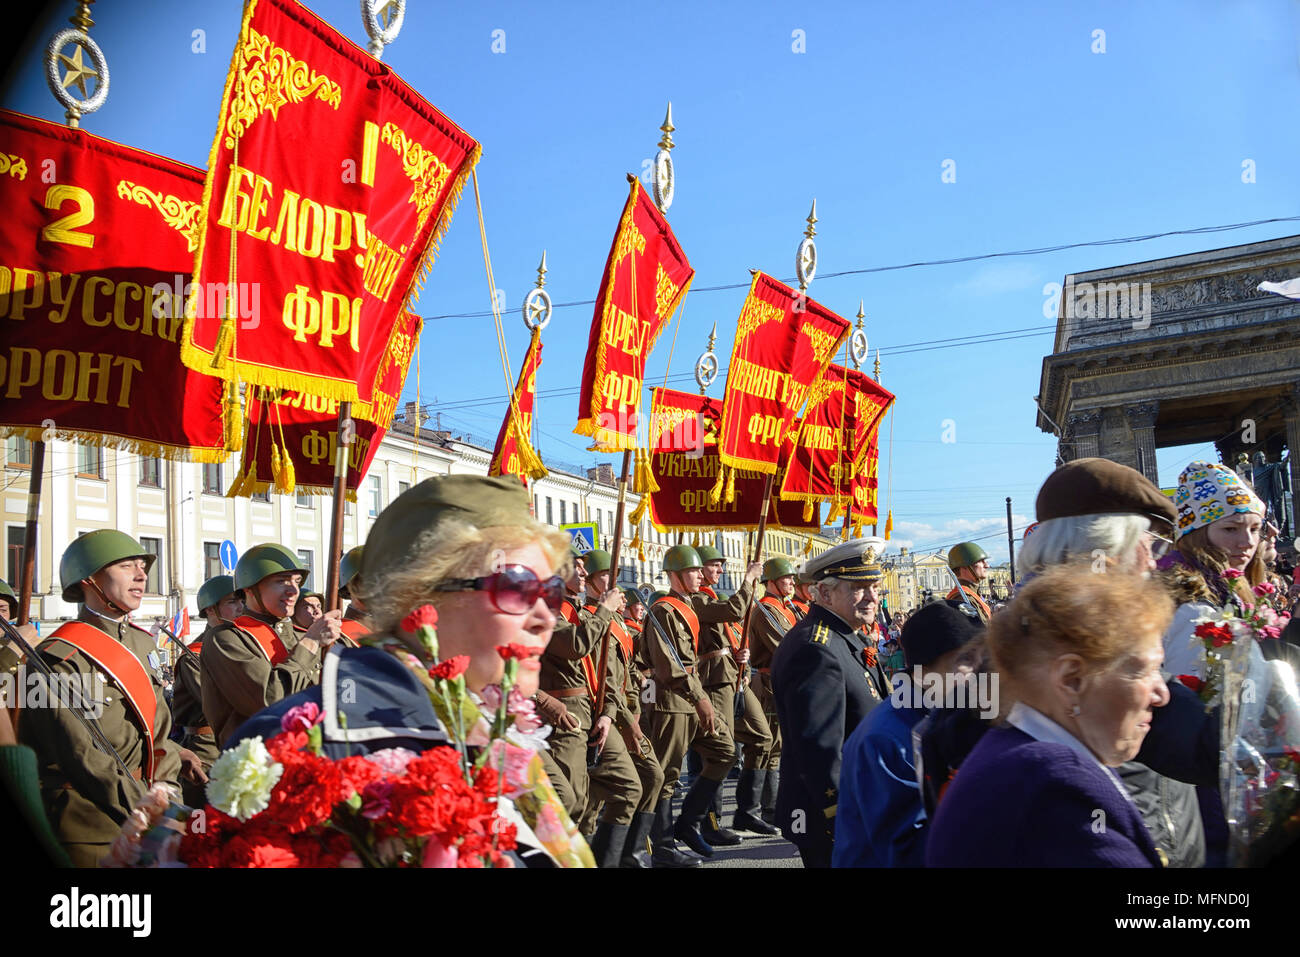 Procession of veterans of World War II on Victory Day - Stock Image